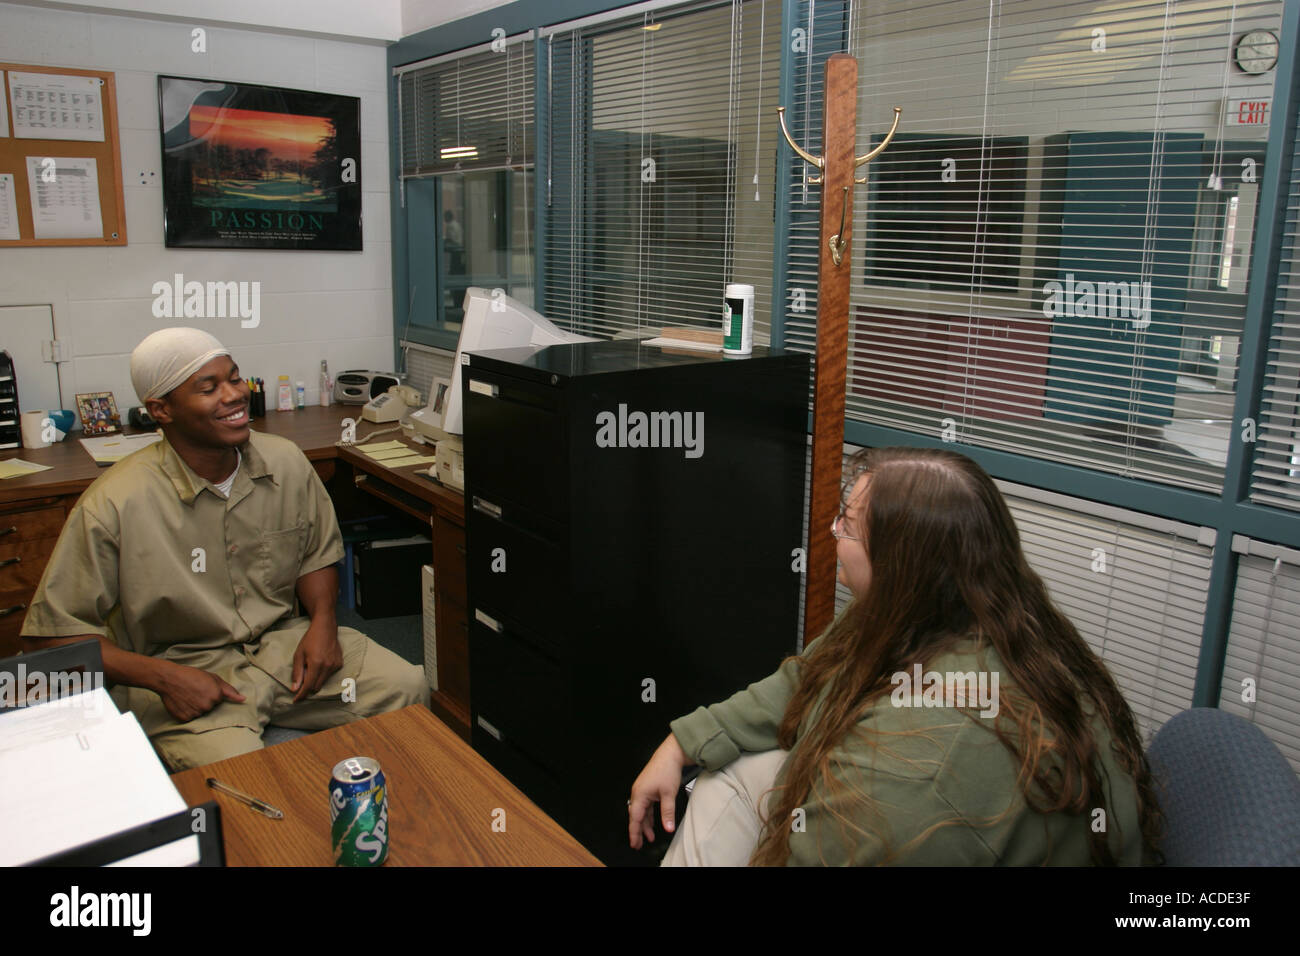 Youth Prison Usa Stockfotos & Youth Prison Usa Bilder - Alamy